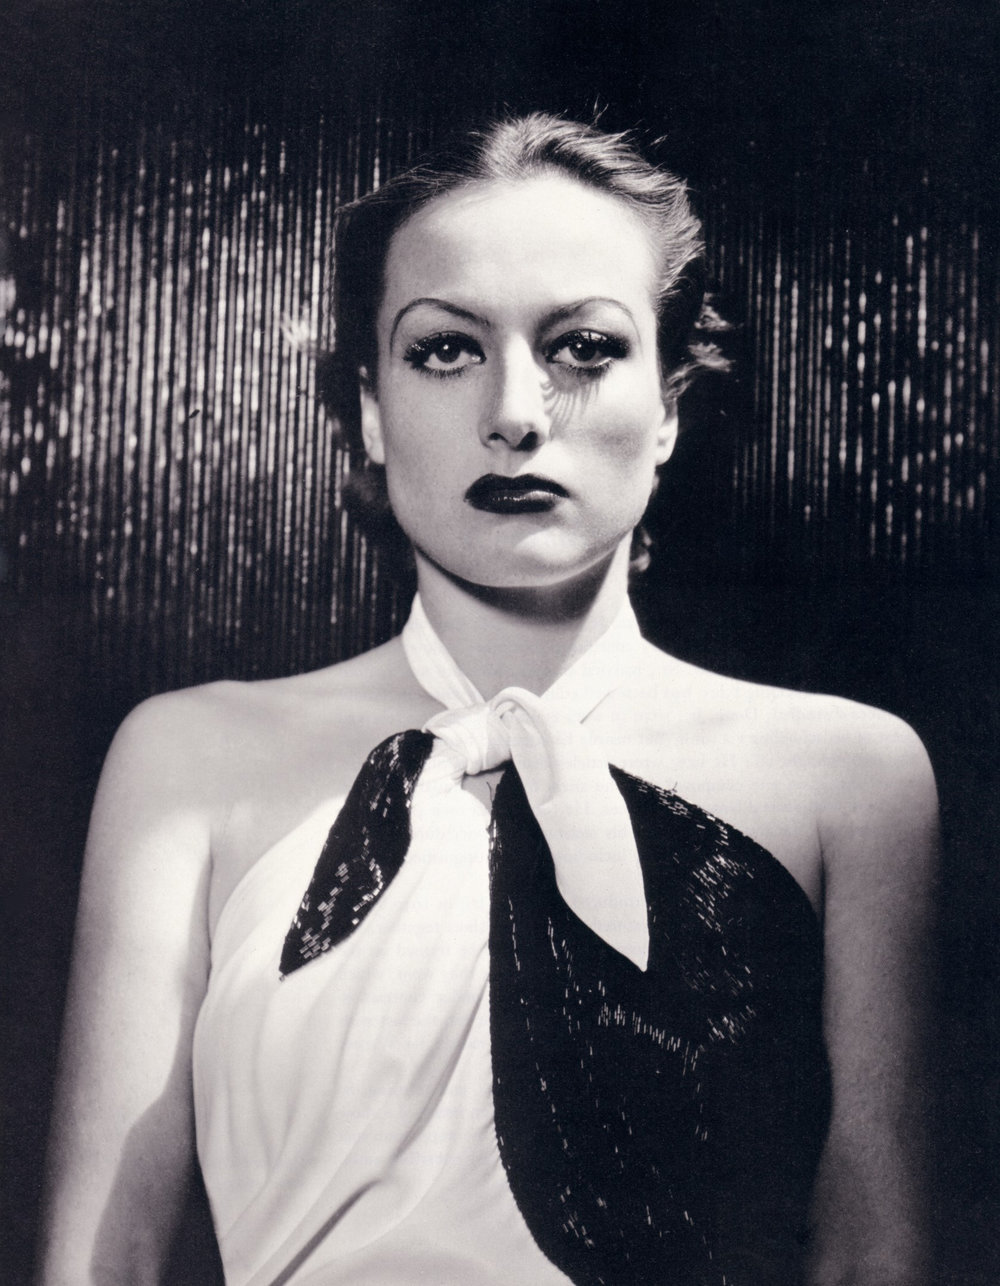 Image of Joan Crawford. Courtesy of the internet.